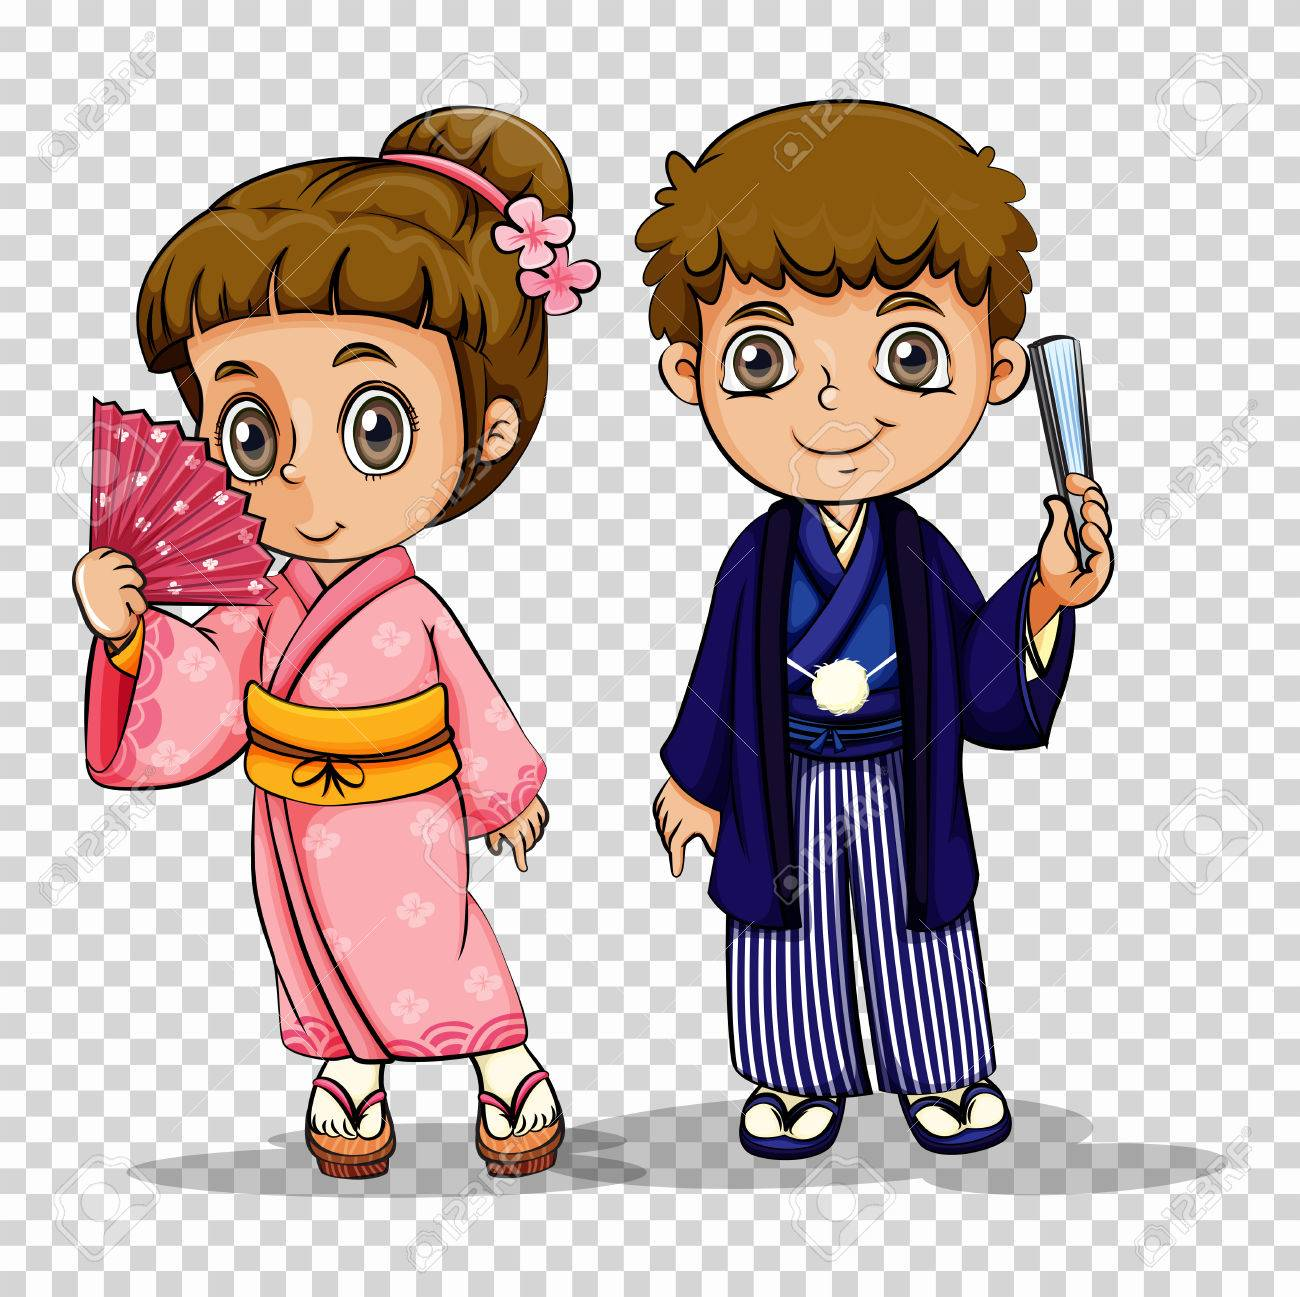 Japanese boy and girl in costume illustration.